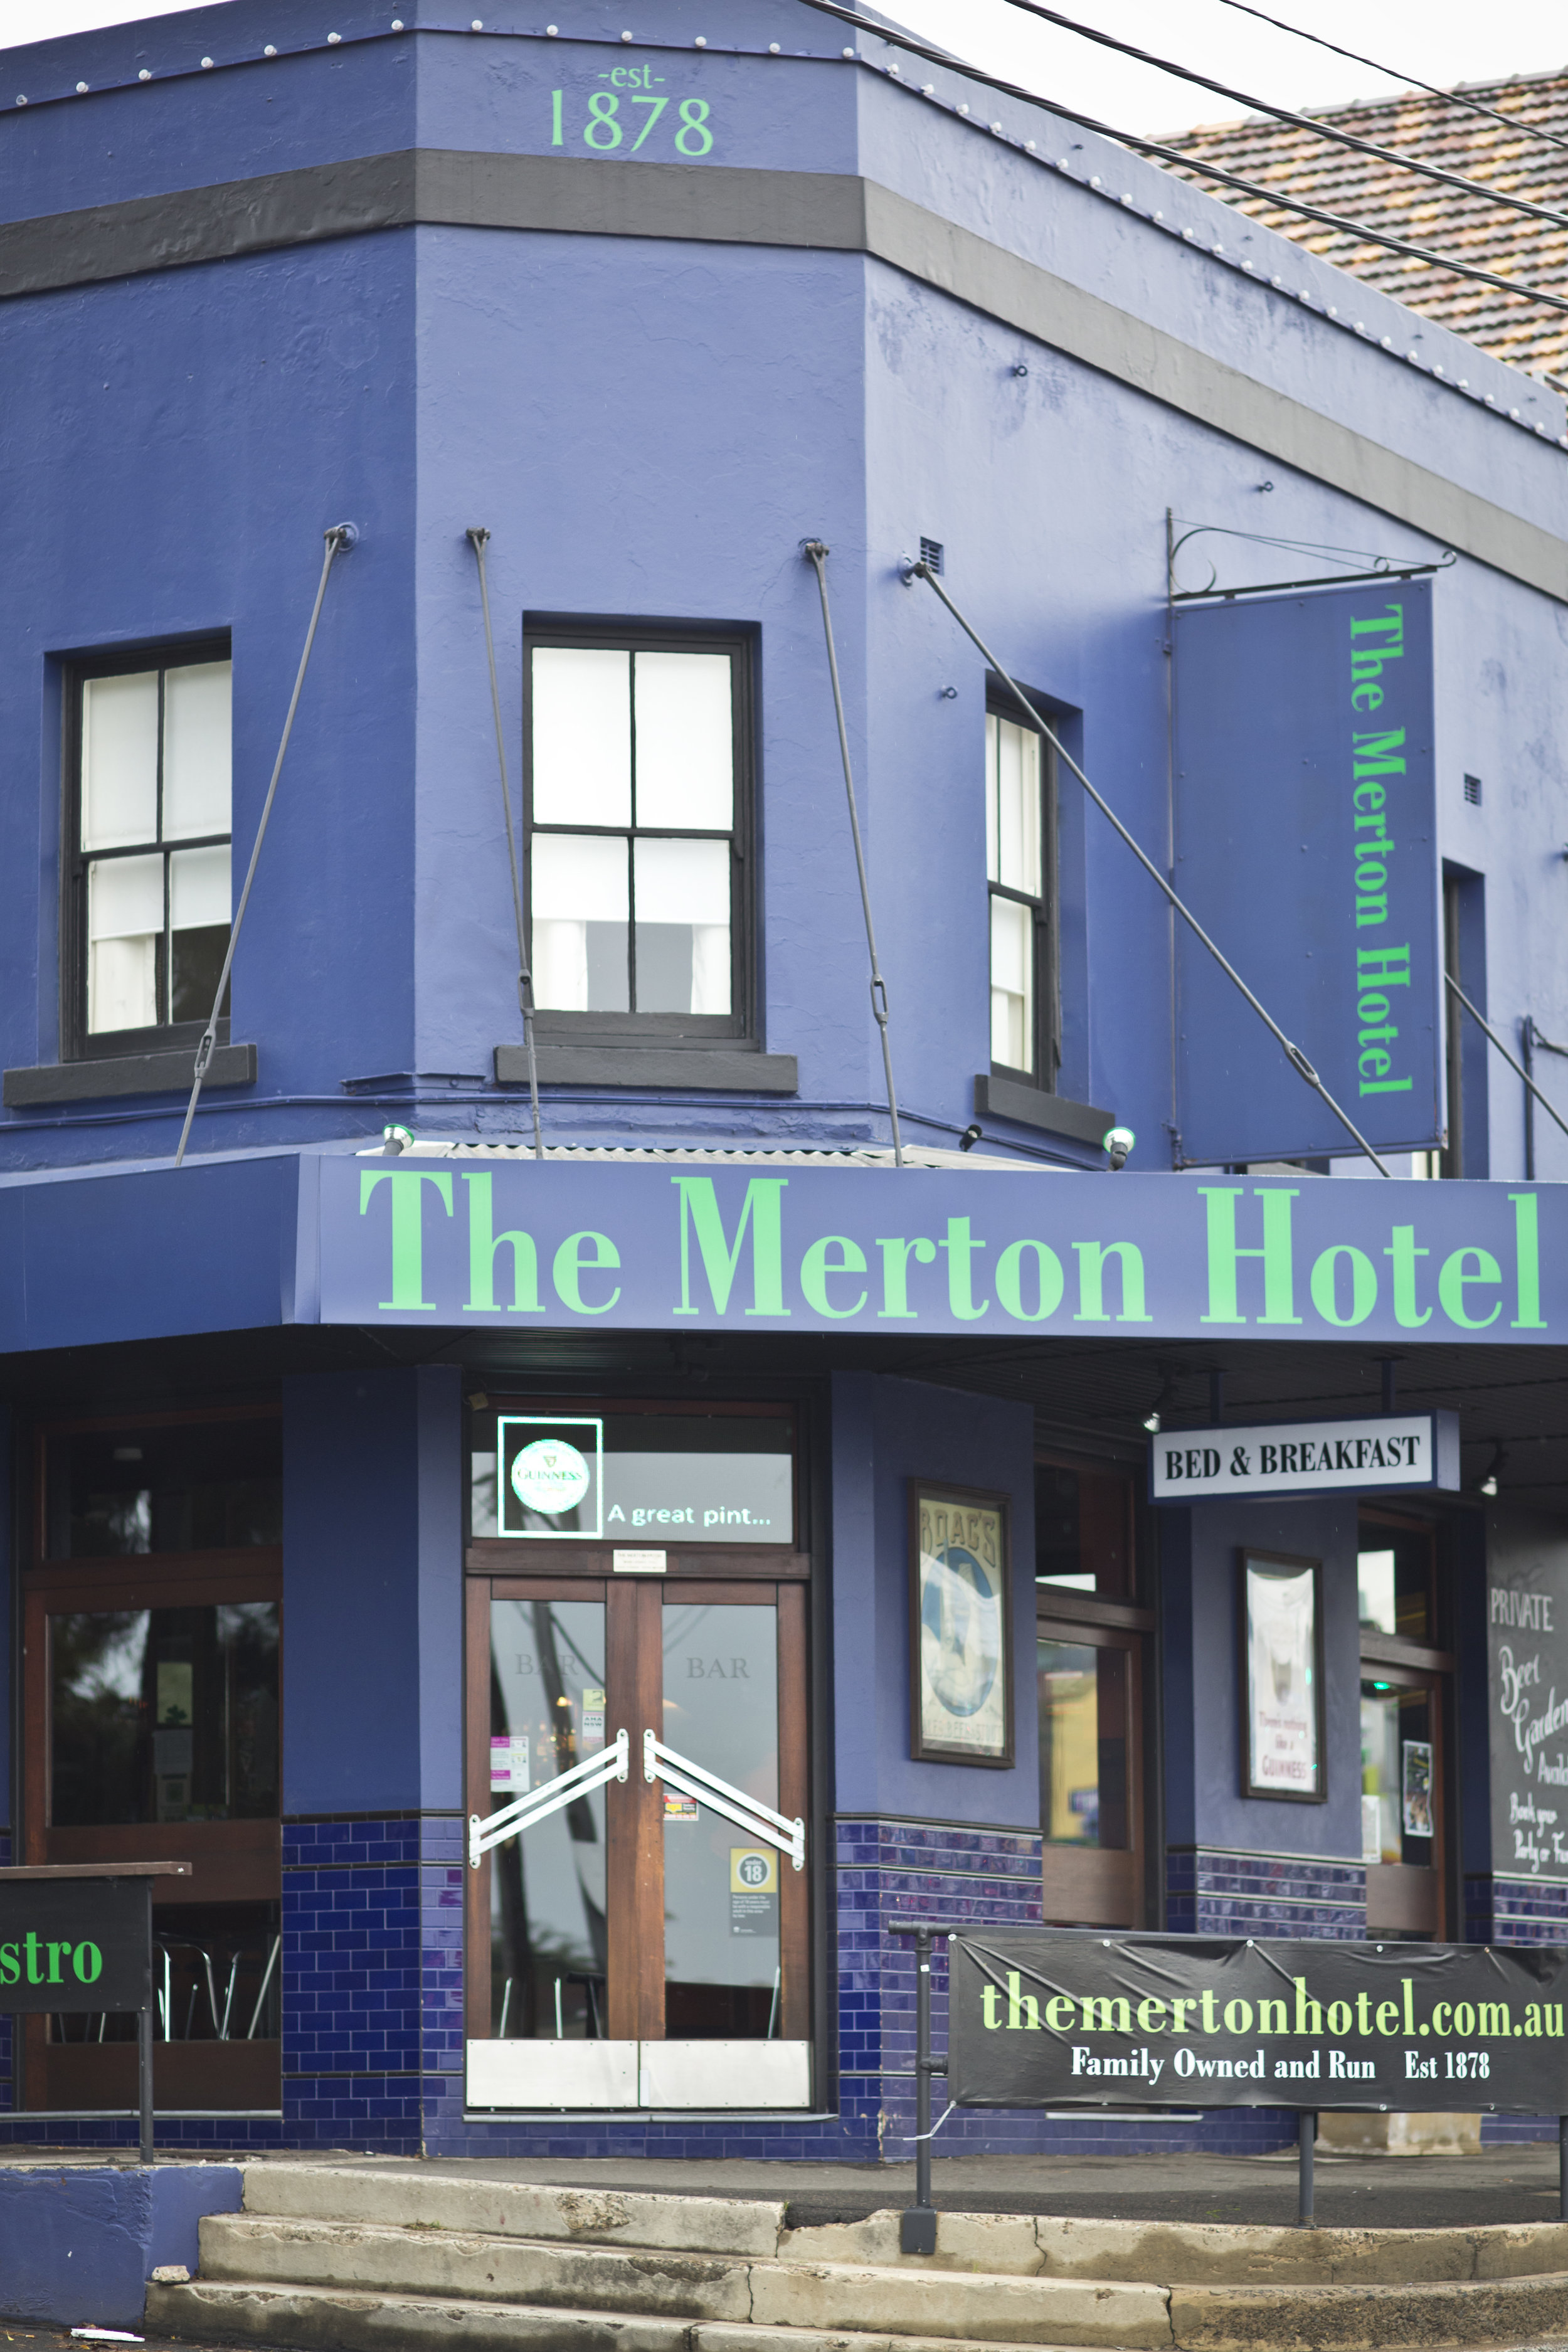 MERTON HOTEL - The Merton Hotel is a locally Irish owned and run pub just 3km from Sydney city in the Balmain Rozelle area.Enjoy views of the harbour bridge and city skyline from the baror spend a sunny afternoon relaxing in the beer garden with a glass of wine and delicious food from the bistro.The Merton Hotel offers quality bed and breakfast accommodationjust minutes from the centre of Sydney and is also a popular venue for functions.Proudly a pokies free zone, the pub offers free live music on weekend evenings where you will see some of Sydney's best musicians.